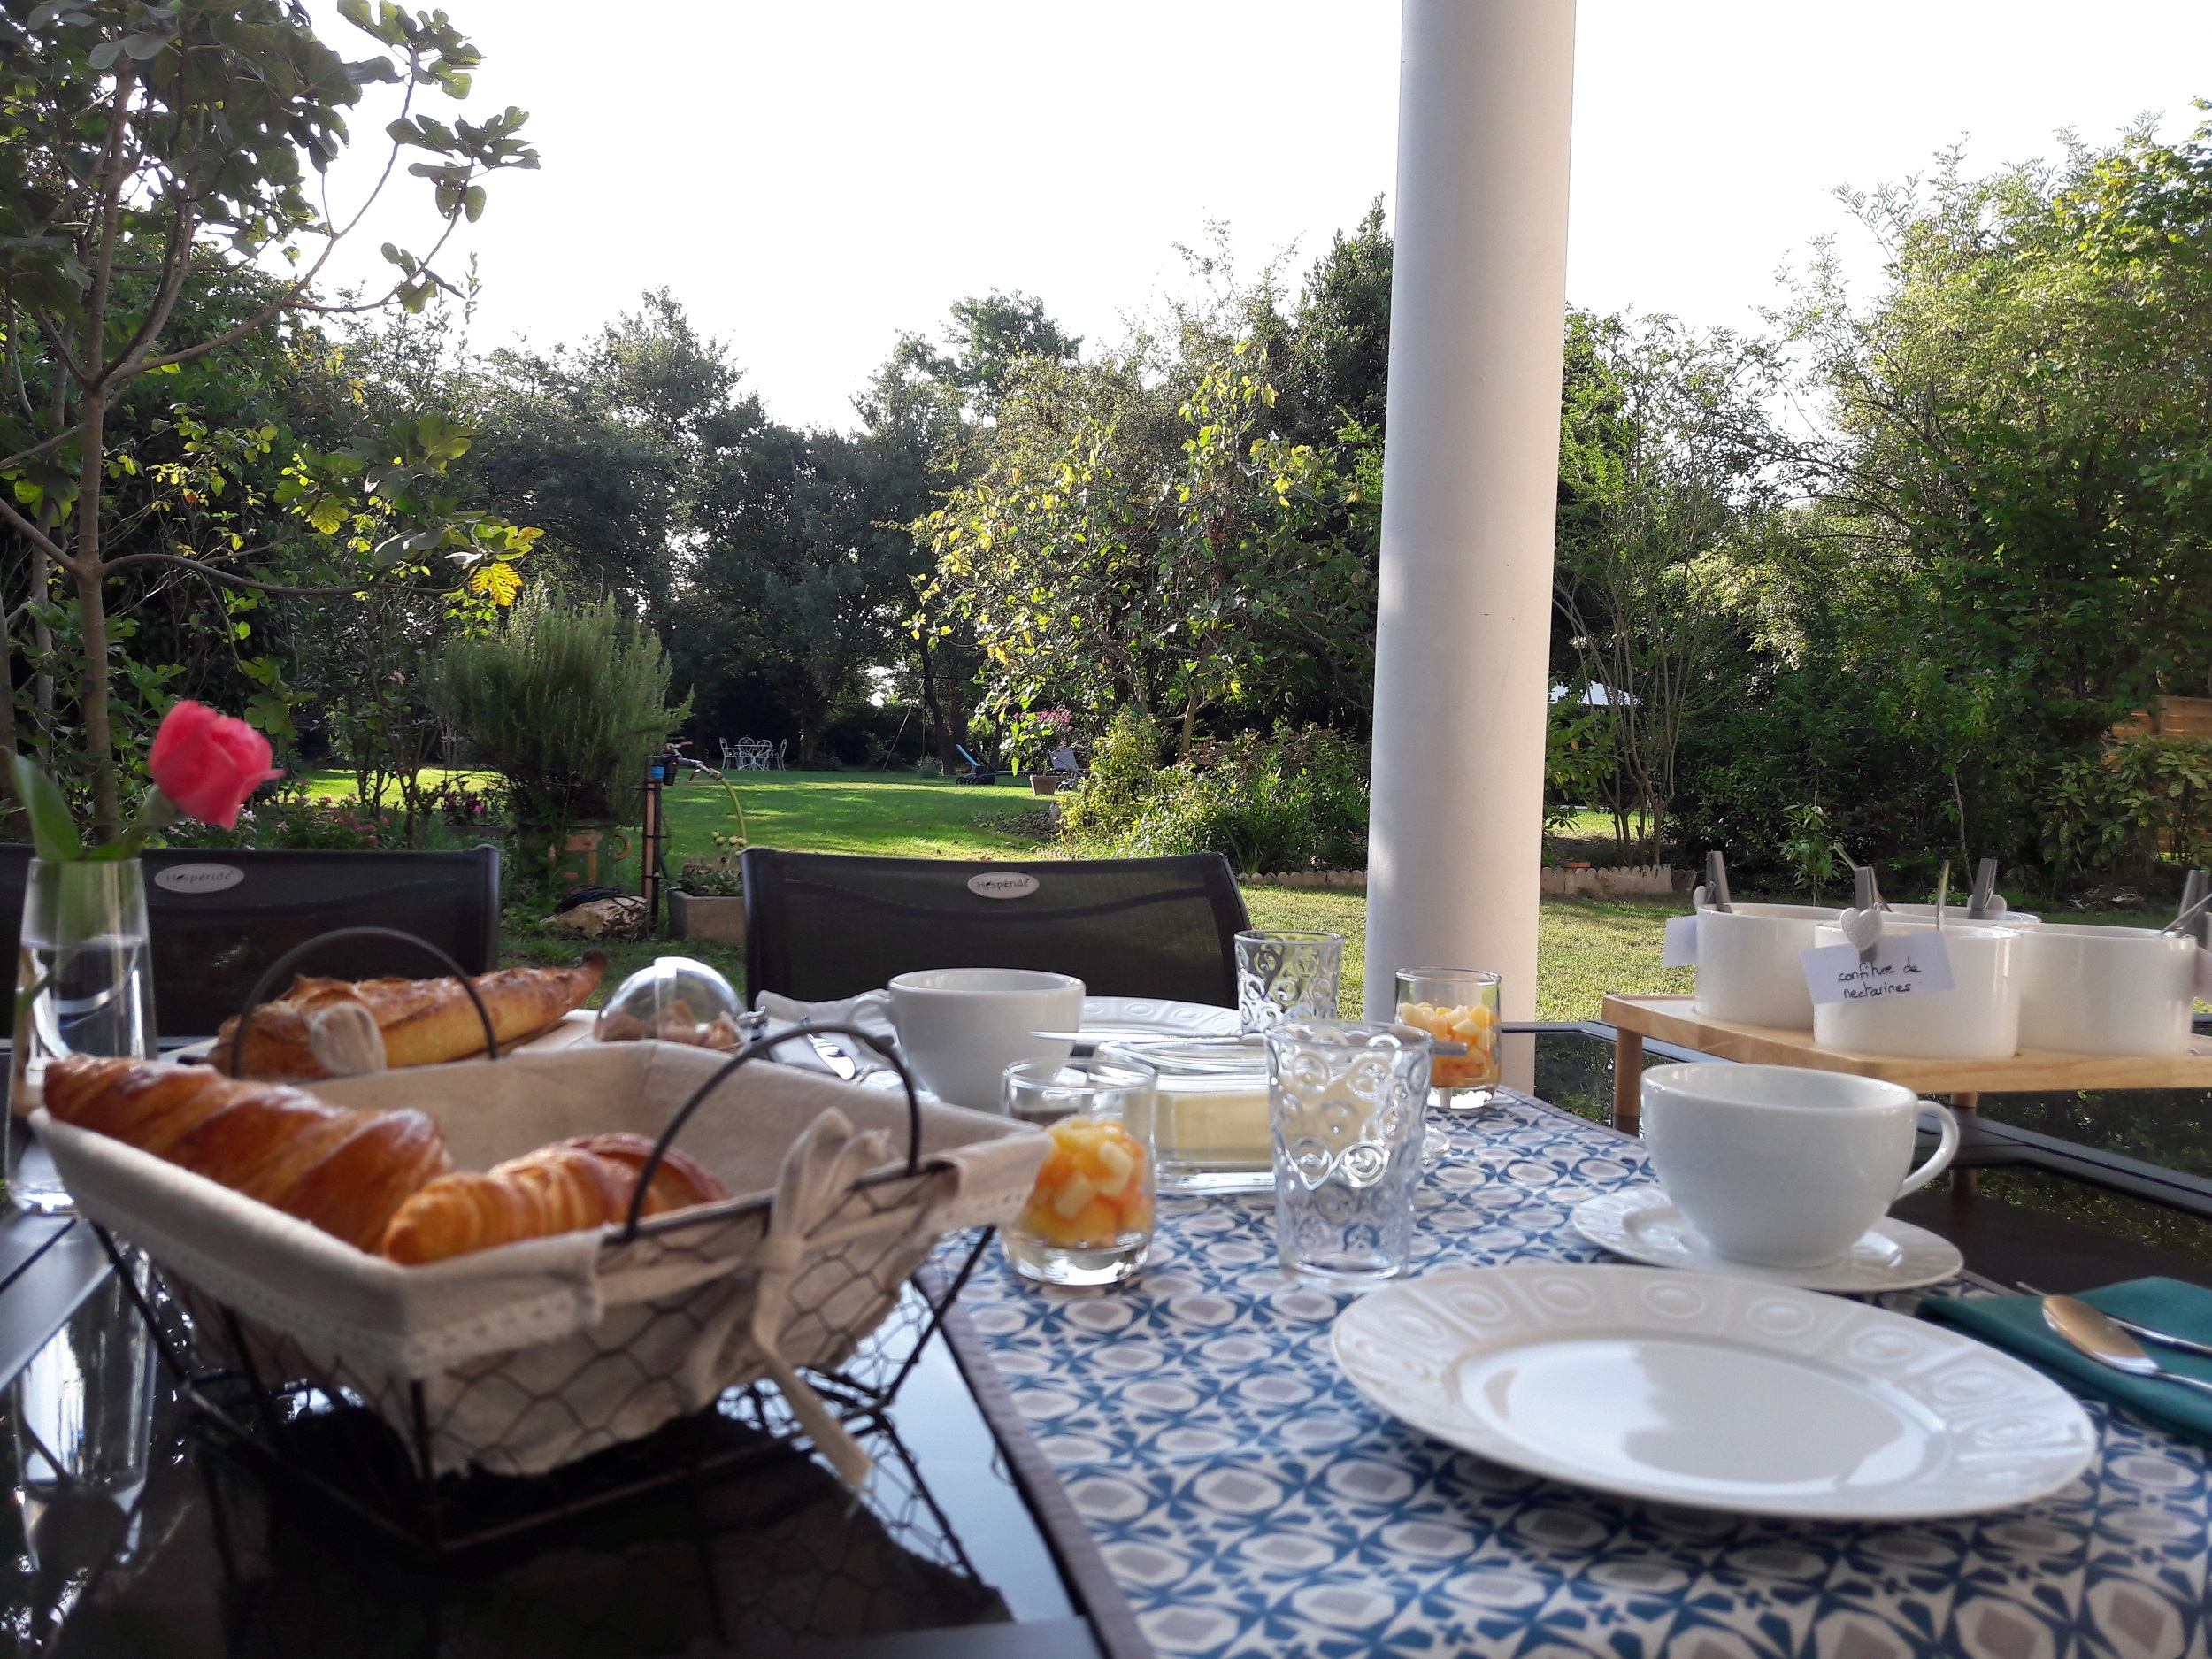 Breakfast served on the terrace with garden view